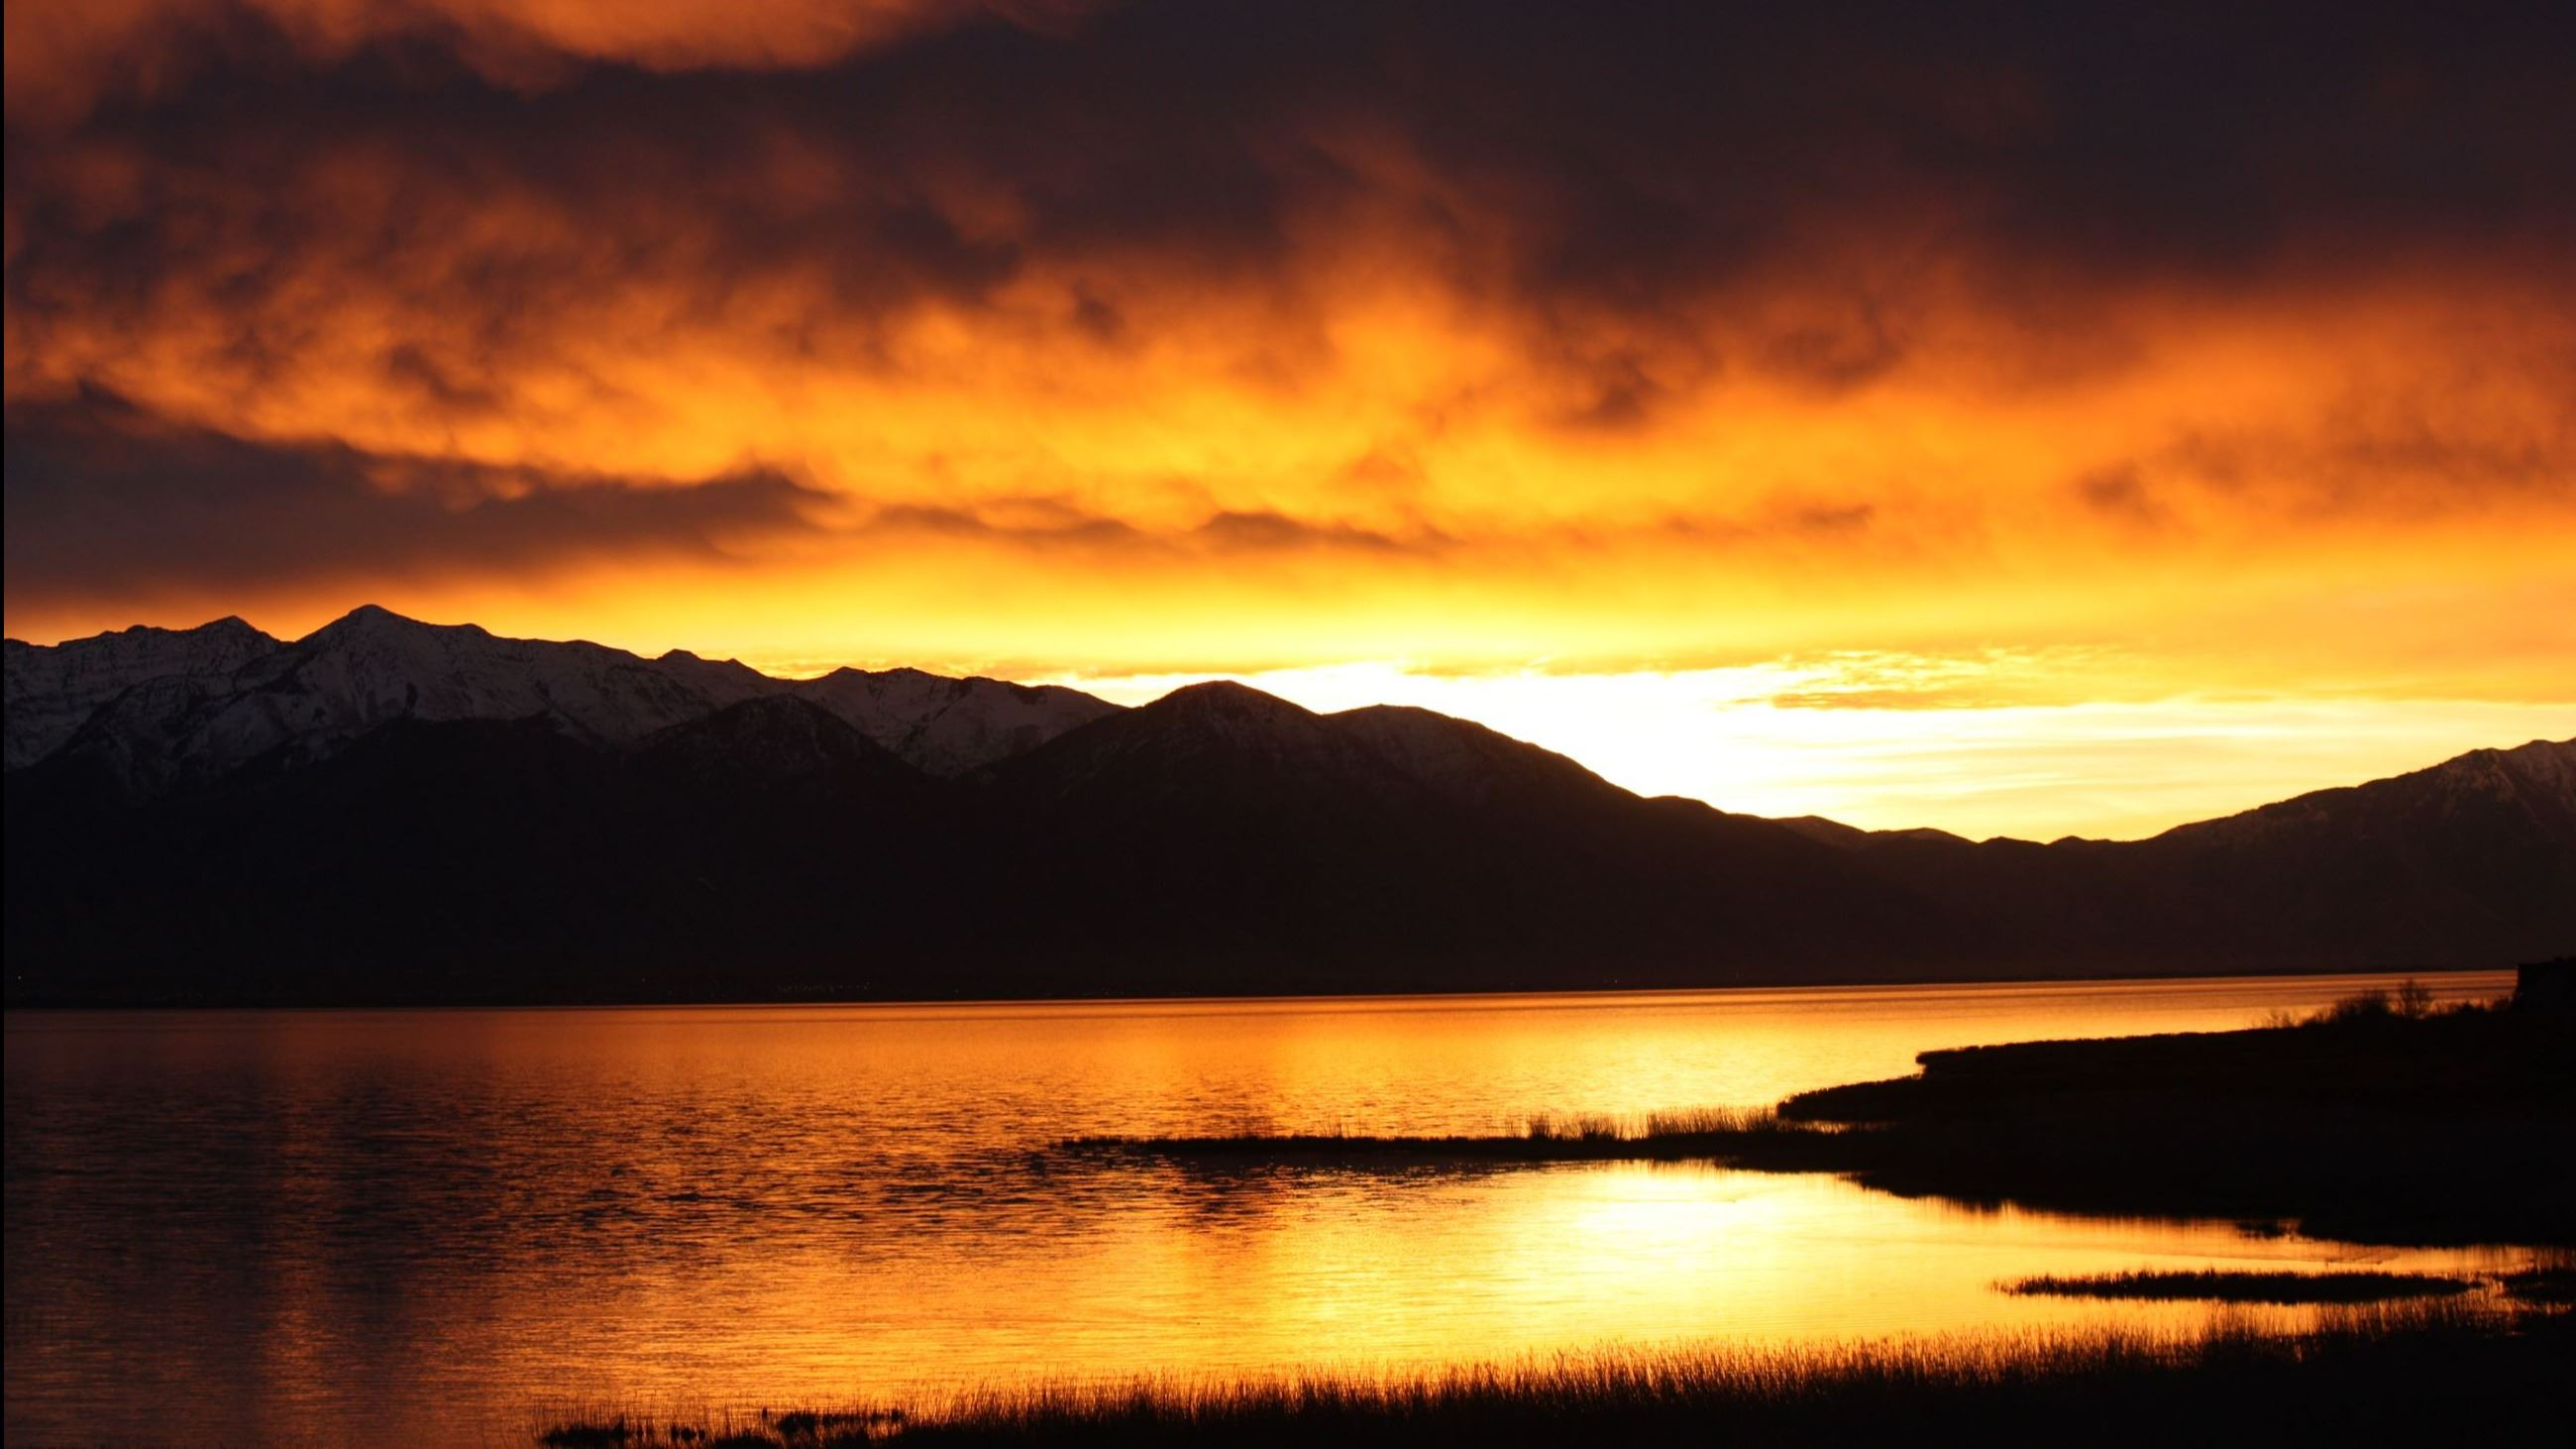 Aubree Gerber- Utah Lake at Sunset